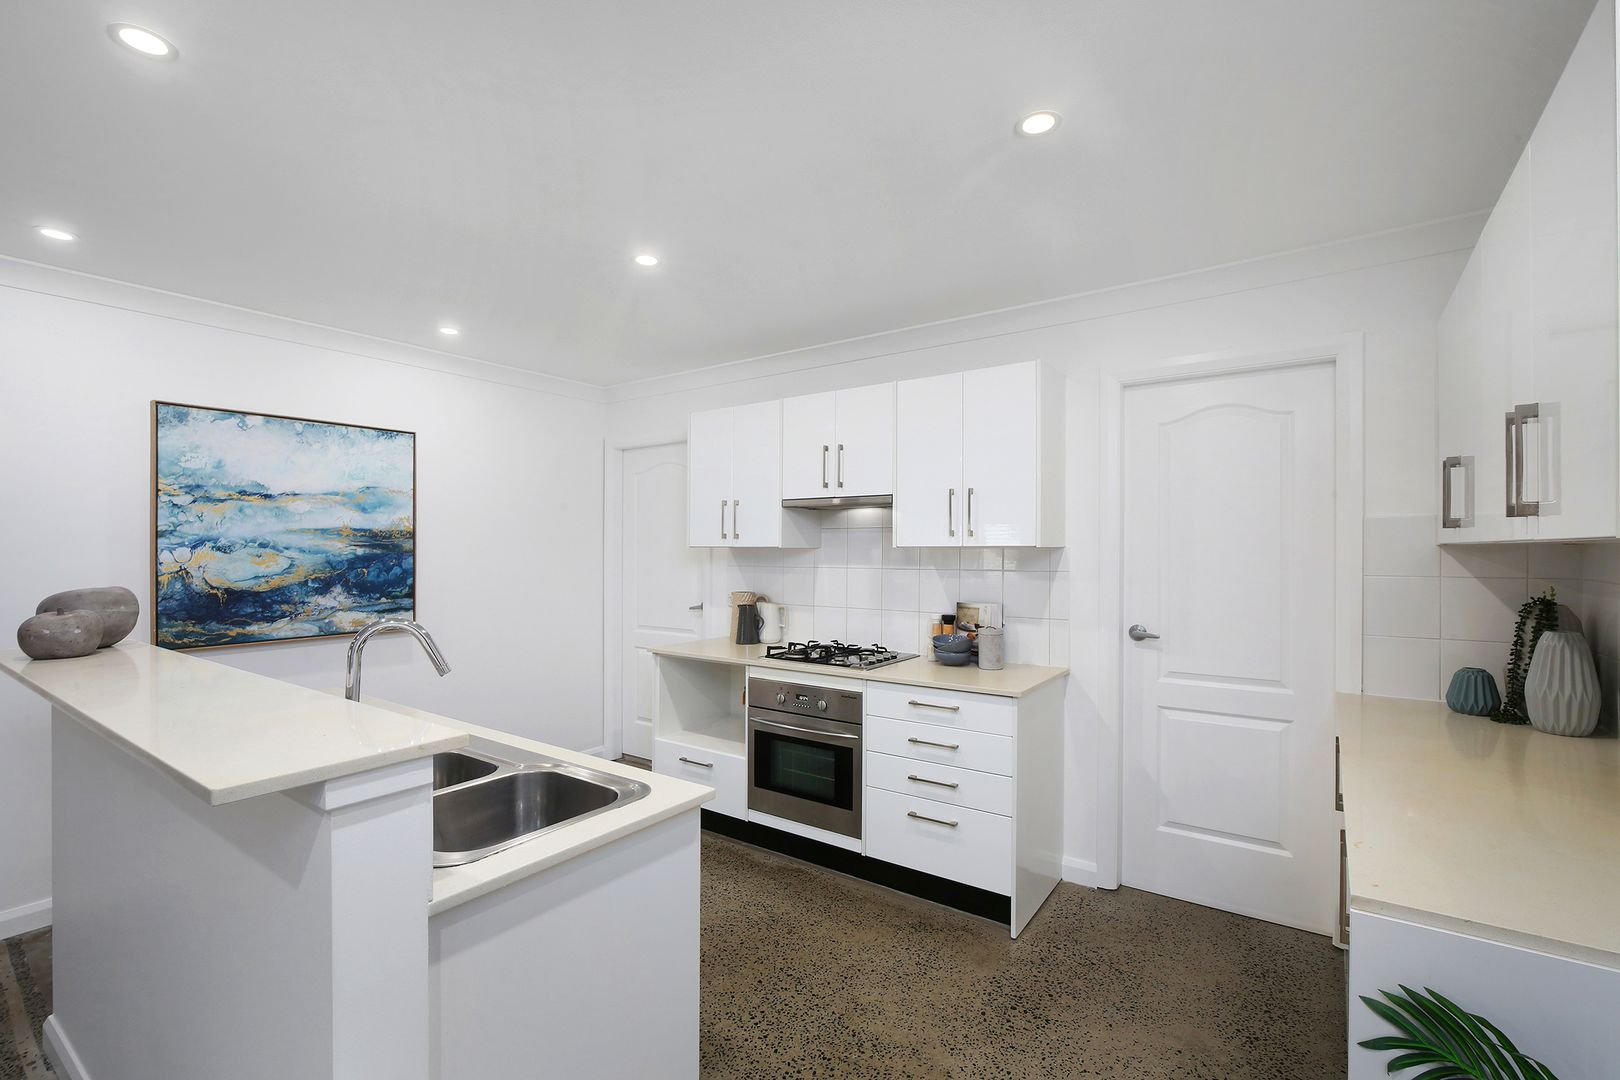 20/13-15 Moore Street, West Gosford NSW 2250, Image 1